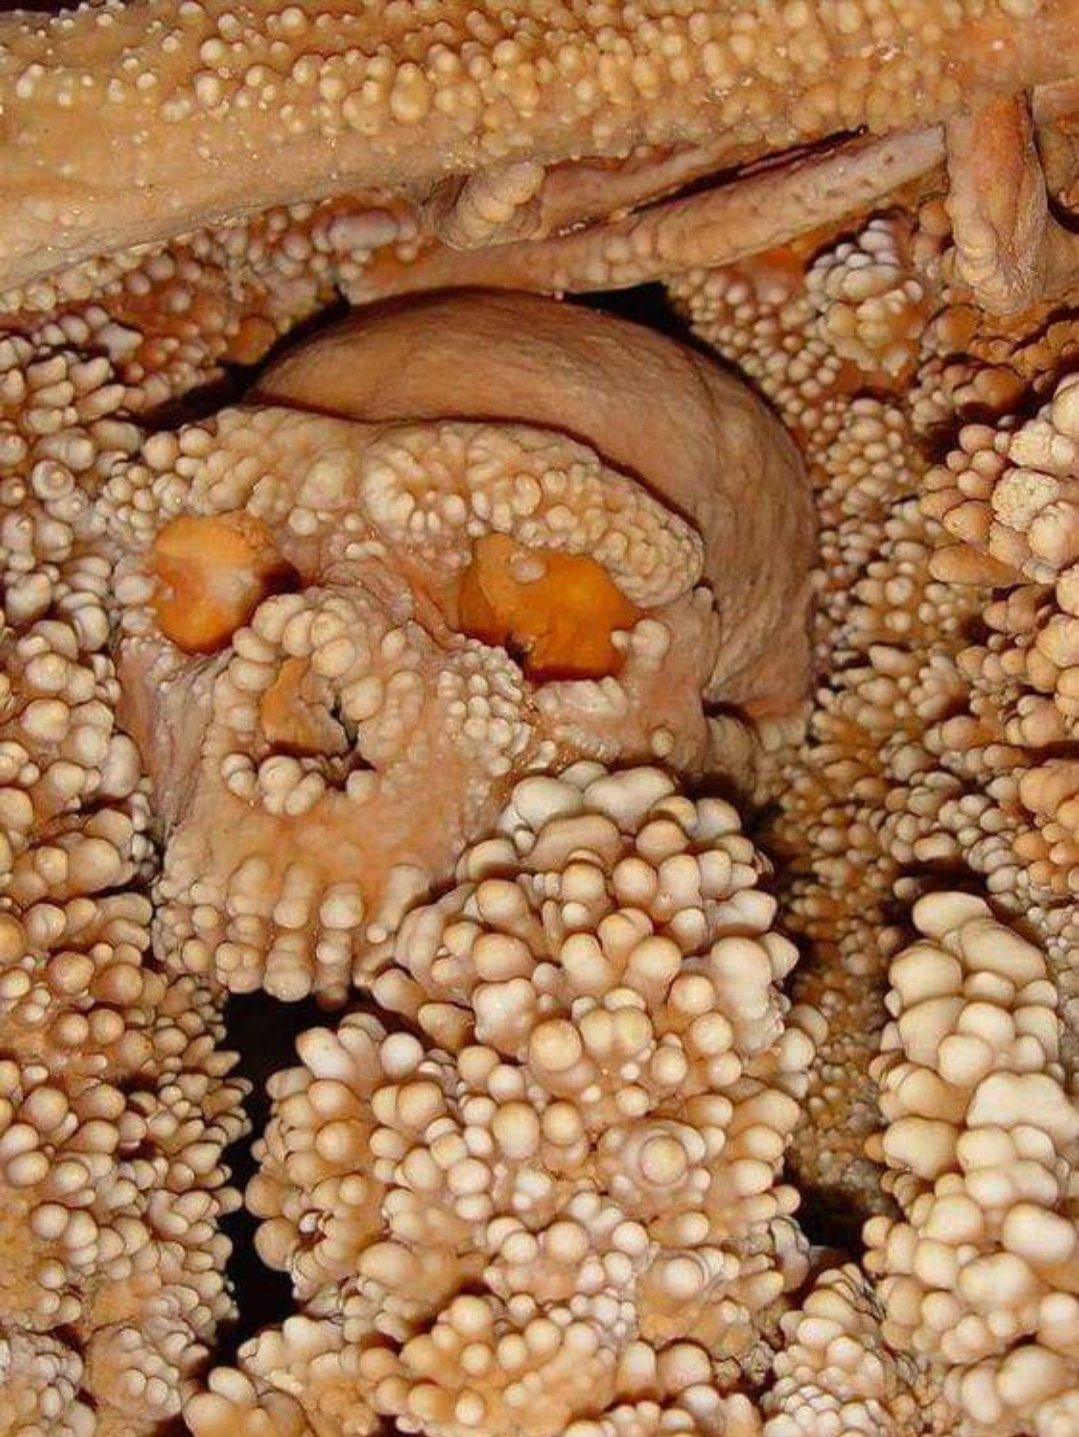 Human skull being absorbed by limestone